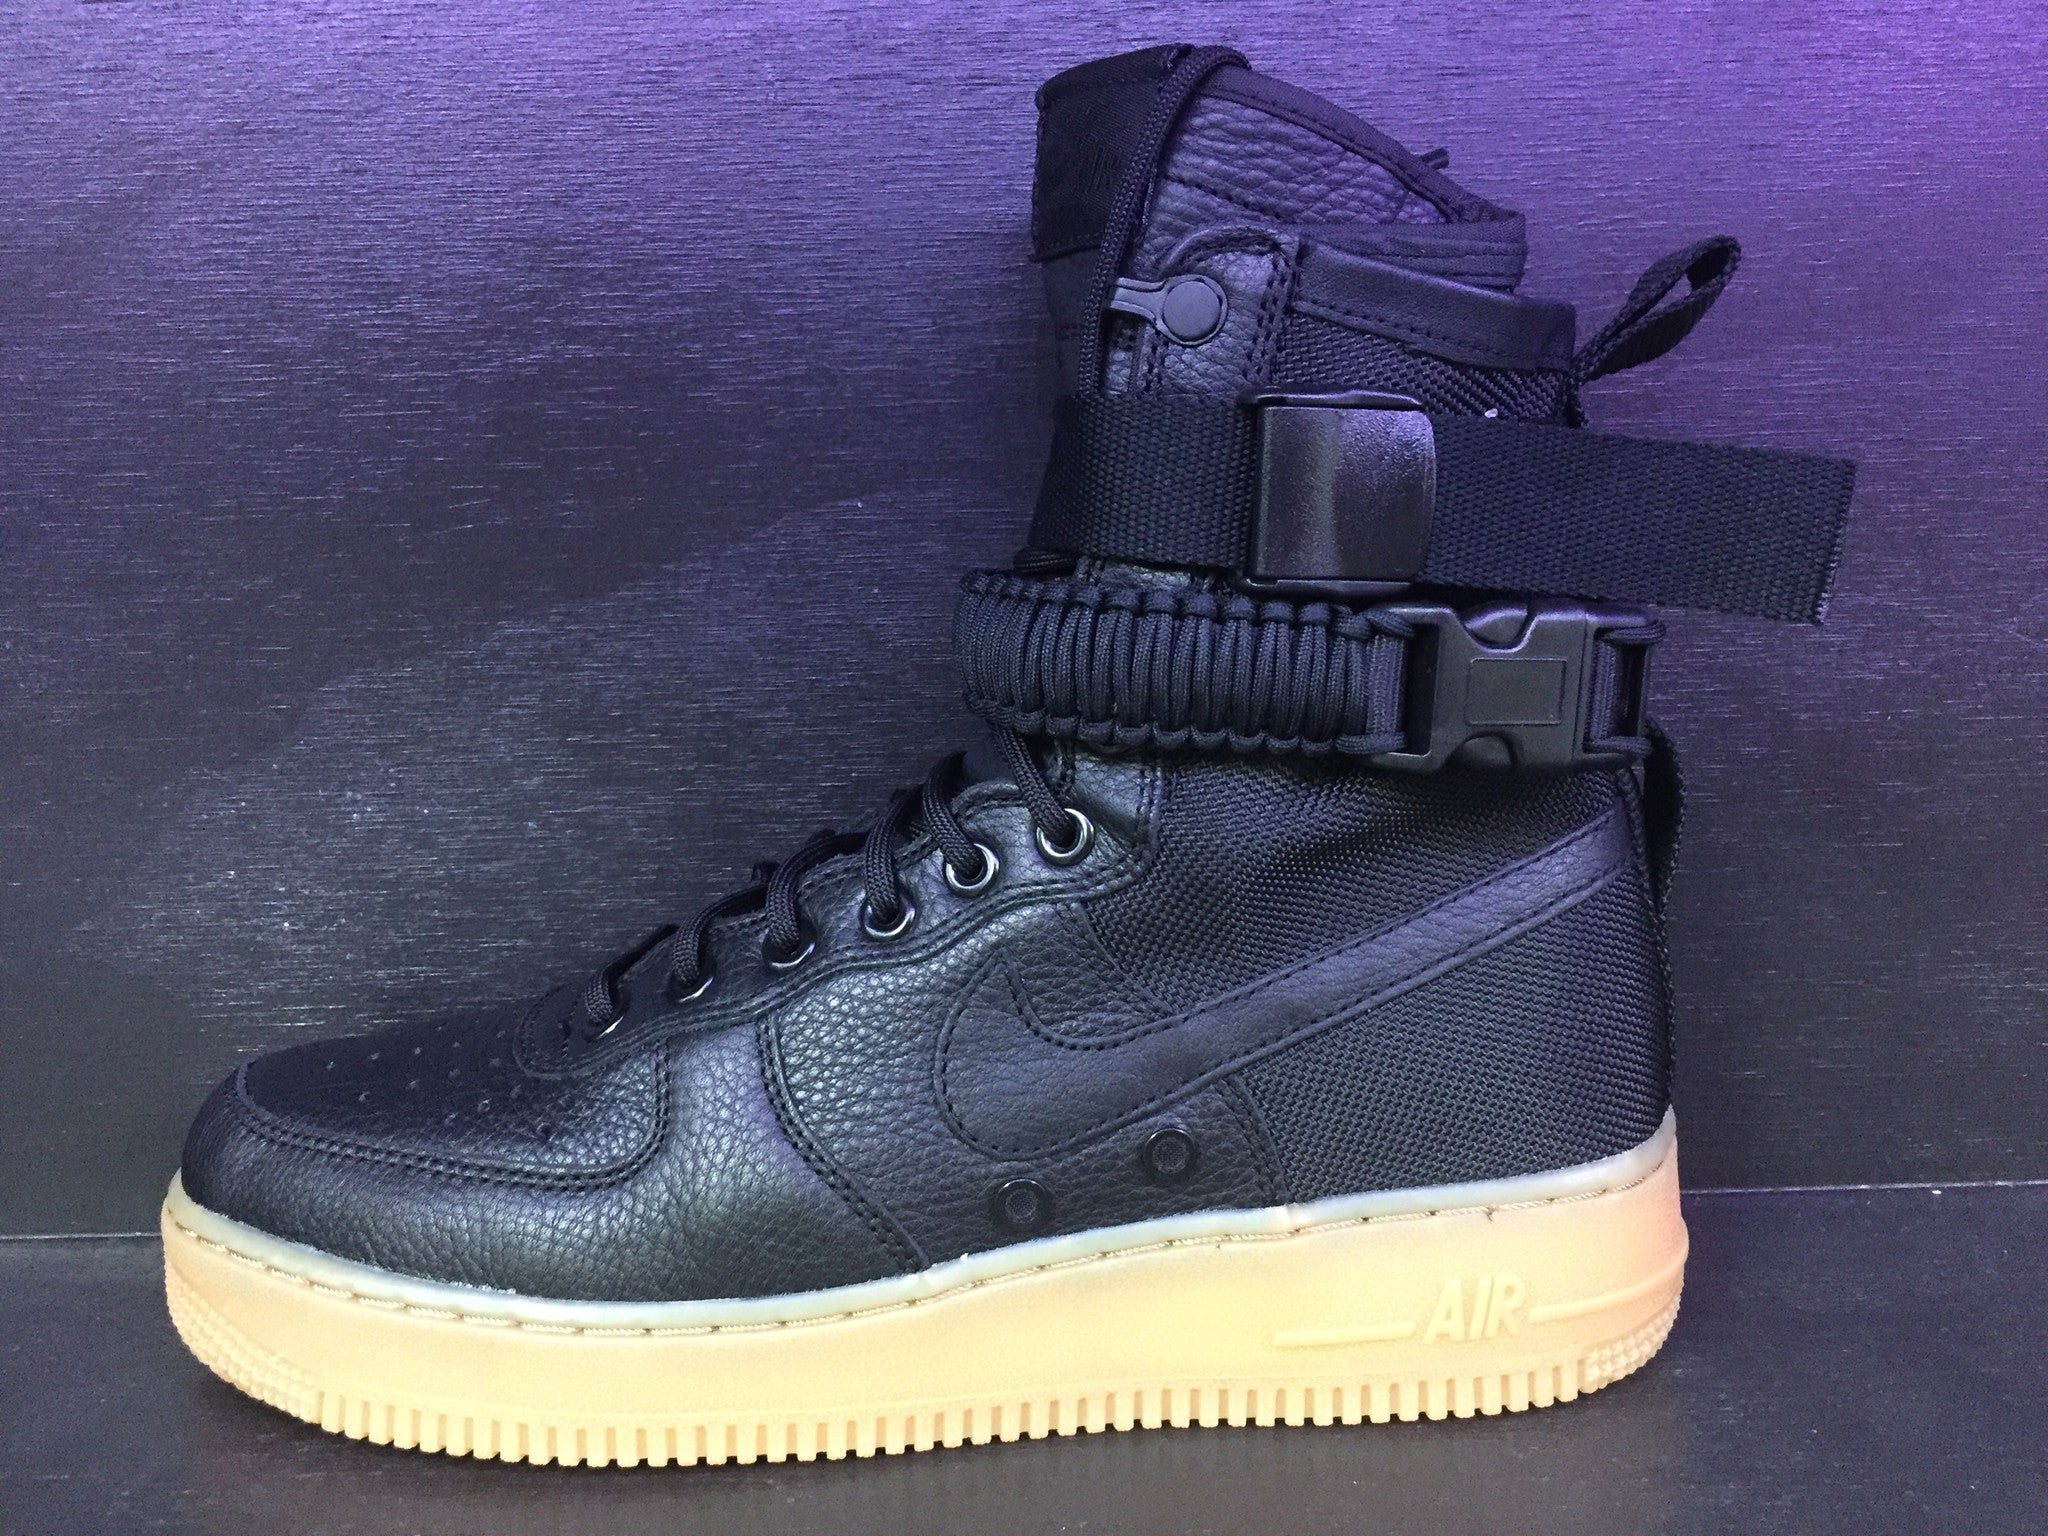 Special Field Air Force 1 'Black' Men's